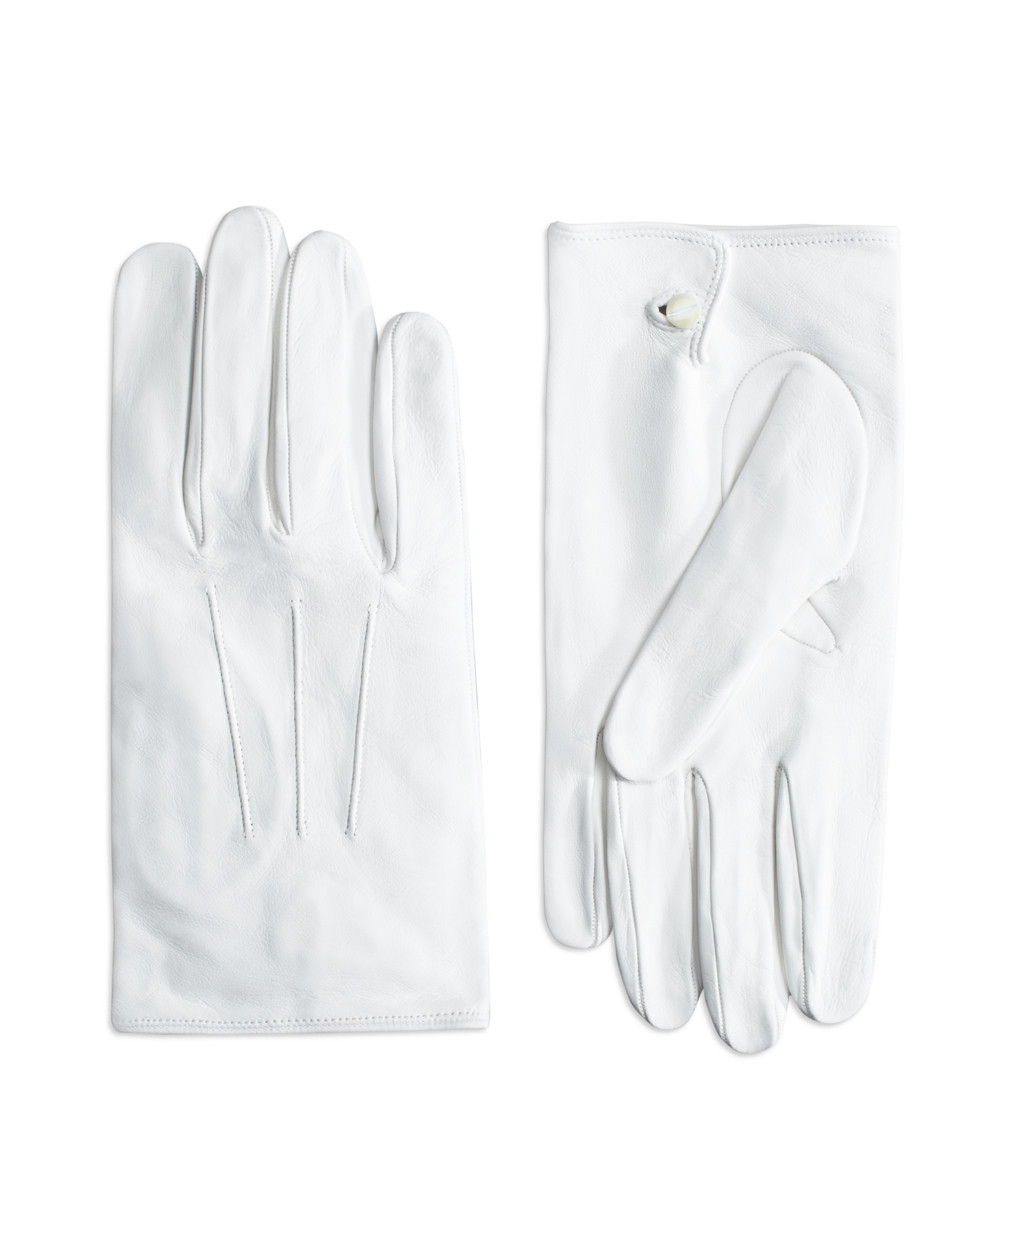 Retro Clothing for Men | Vintage Men's Fashion Mens White Formal Gloves $148.00 AT vintagedancer.com